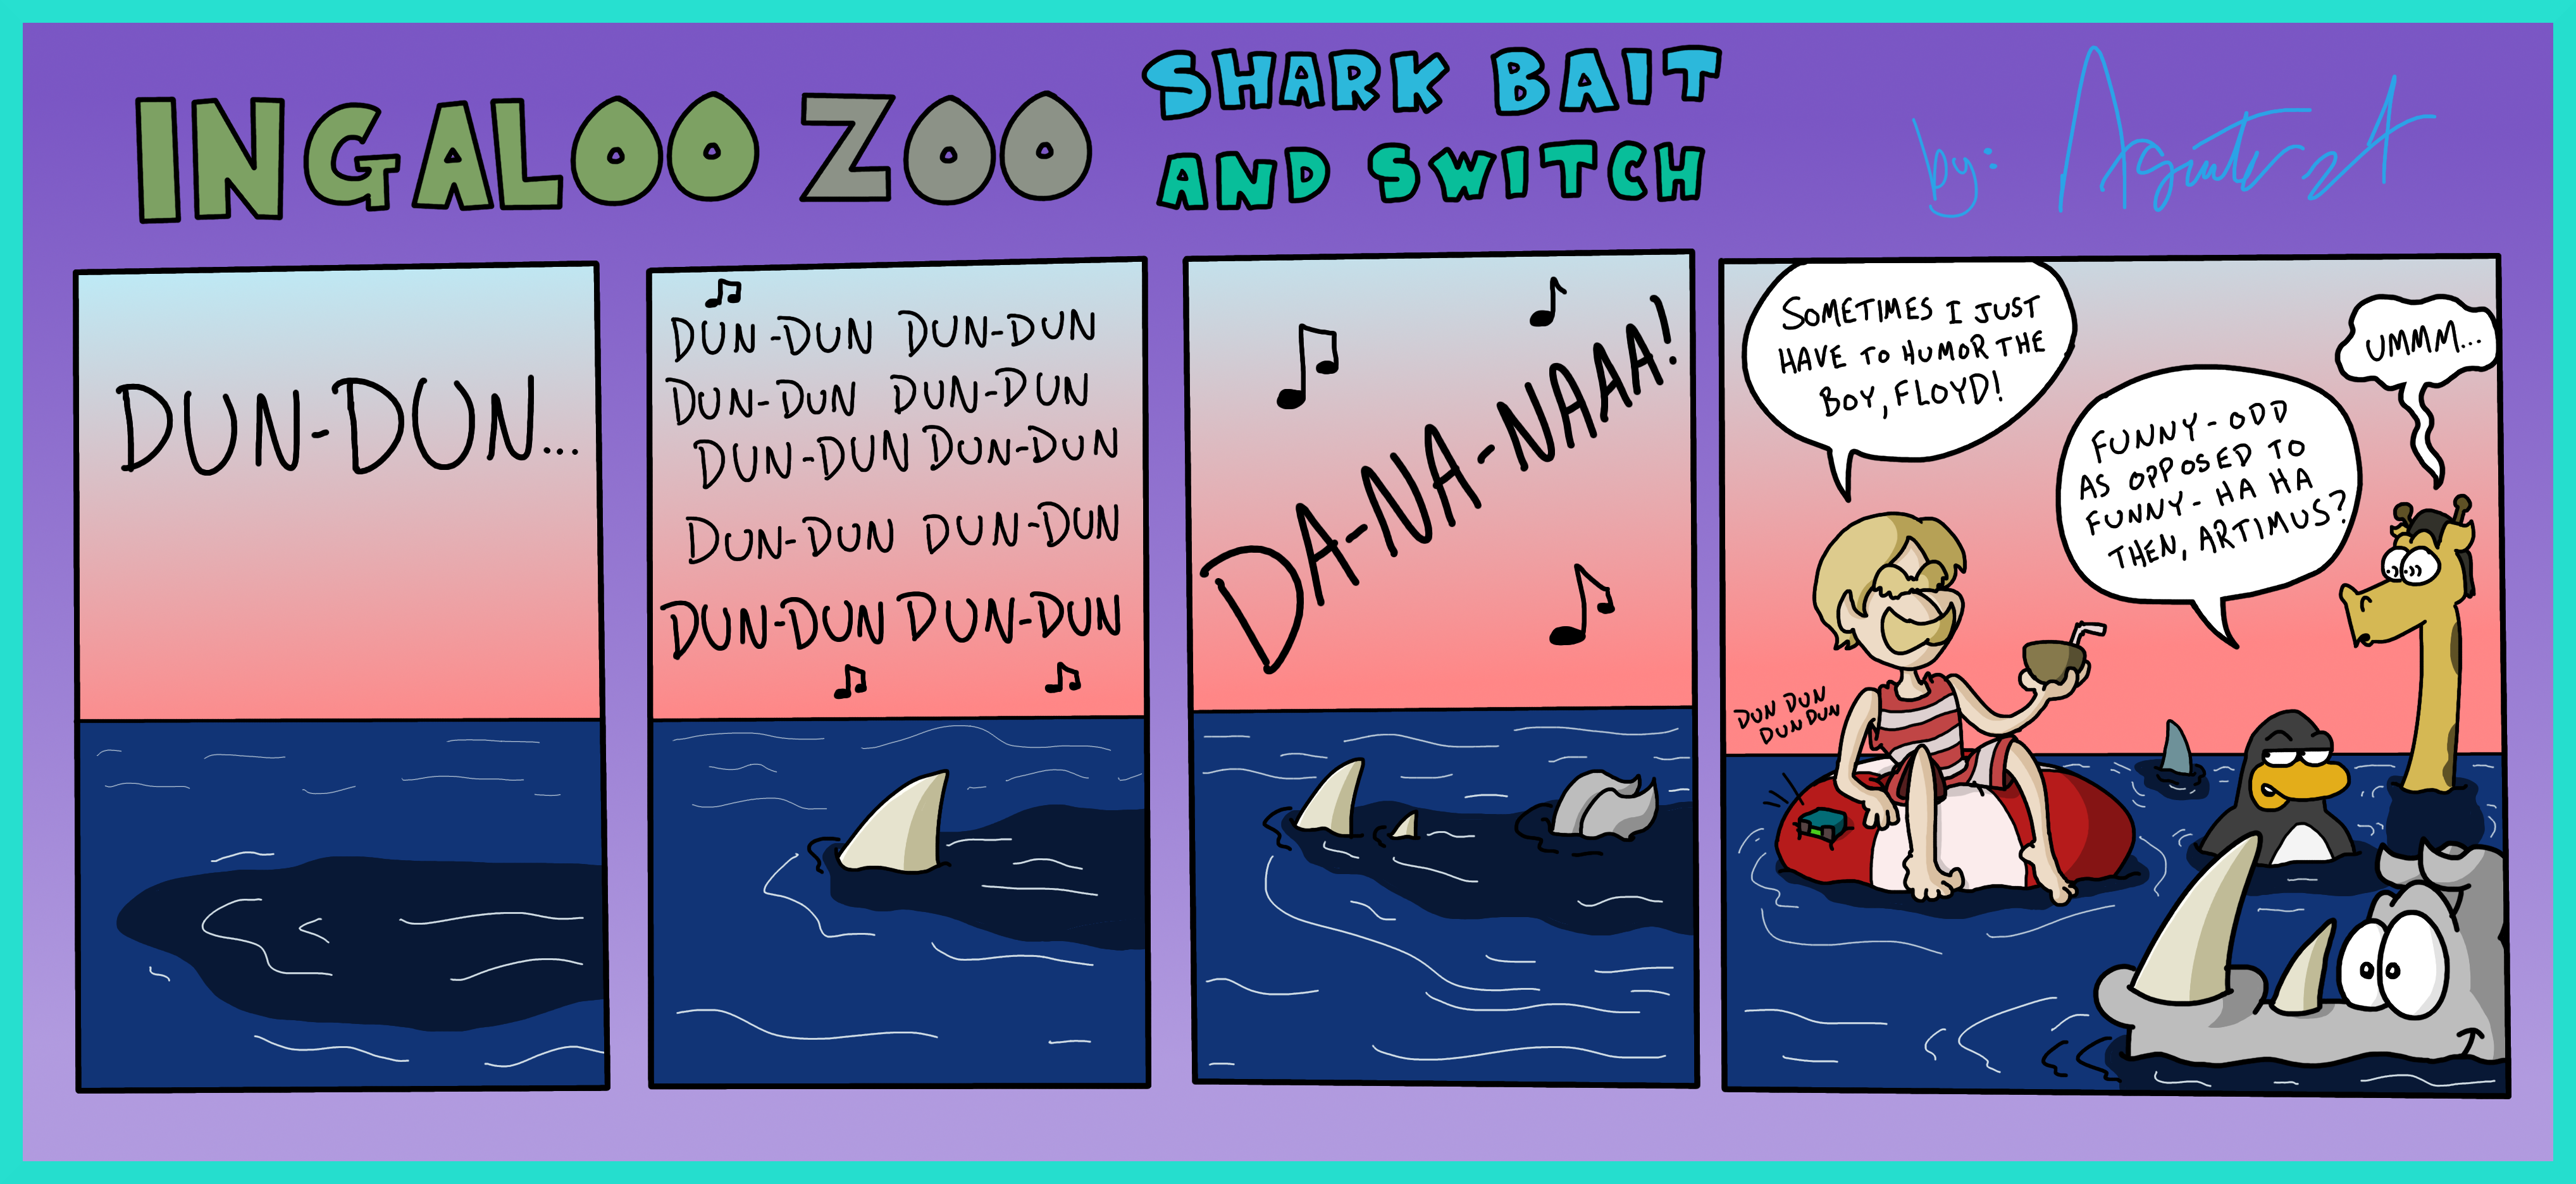 Ingaloo Zoo: Shark Bait and Switch by AgentC-24 on DeviantArt